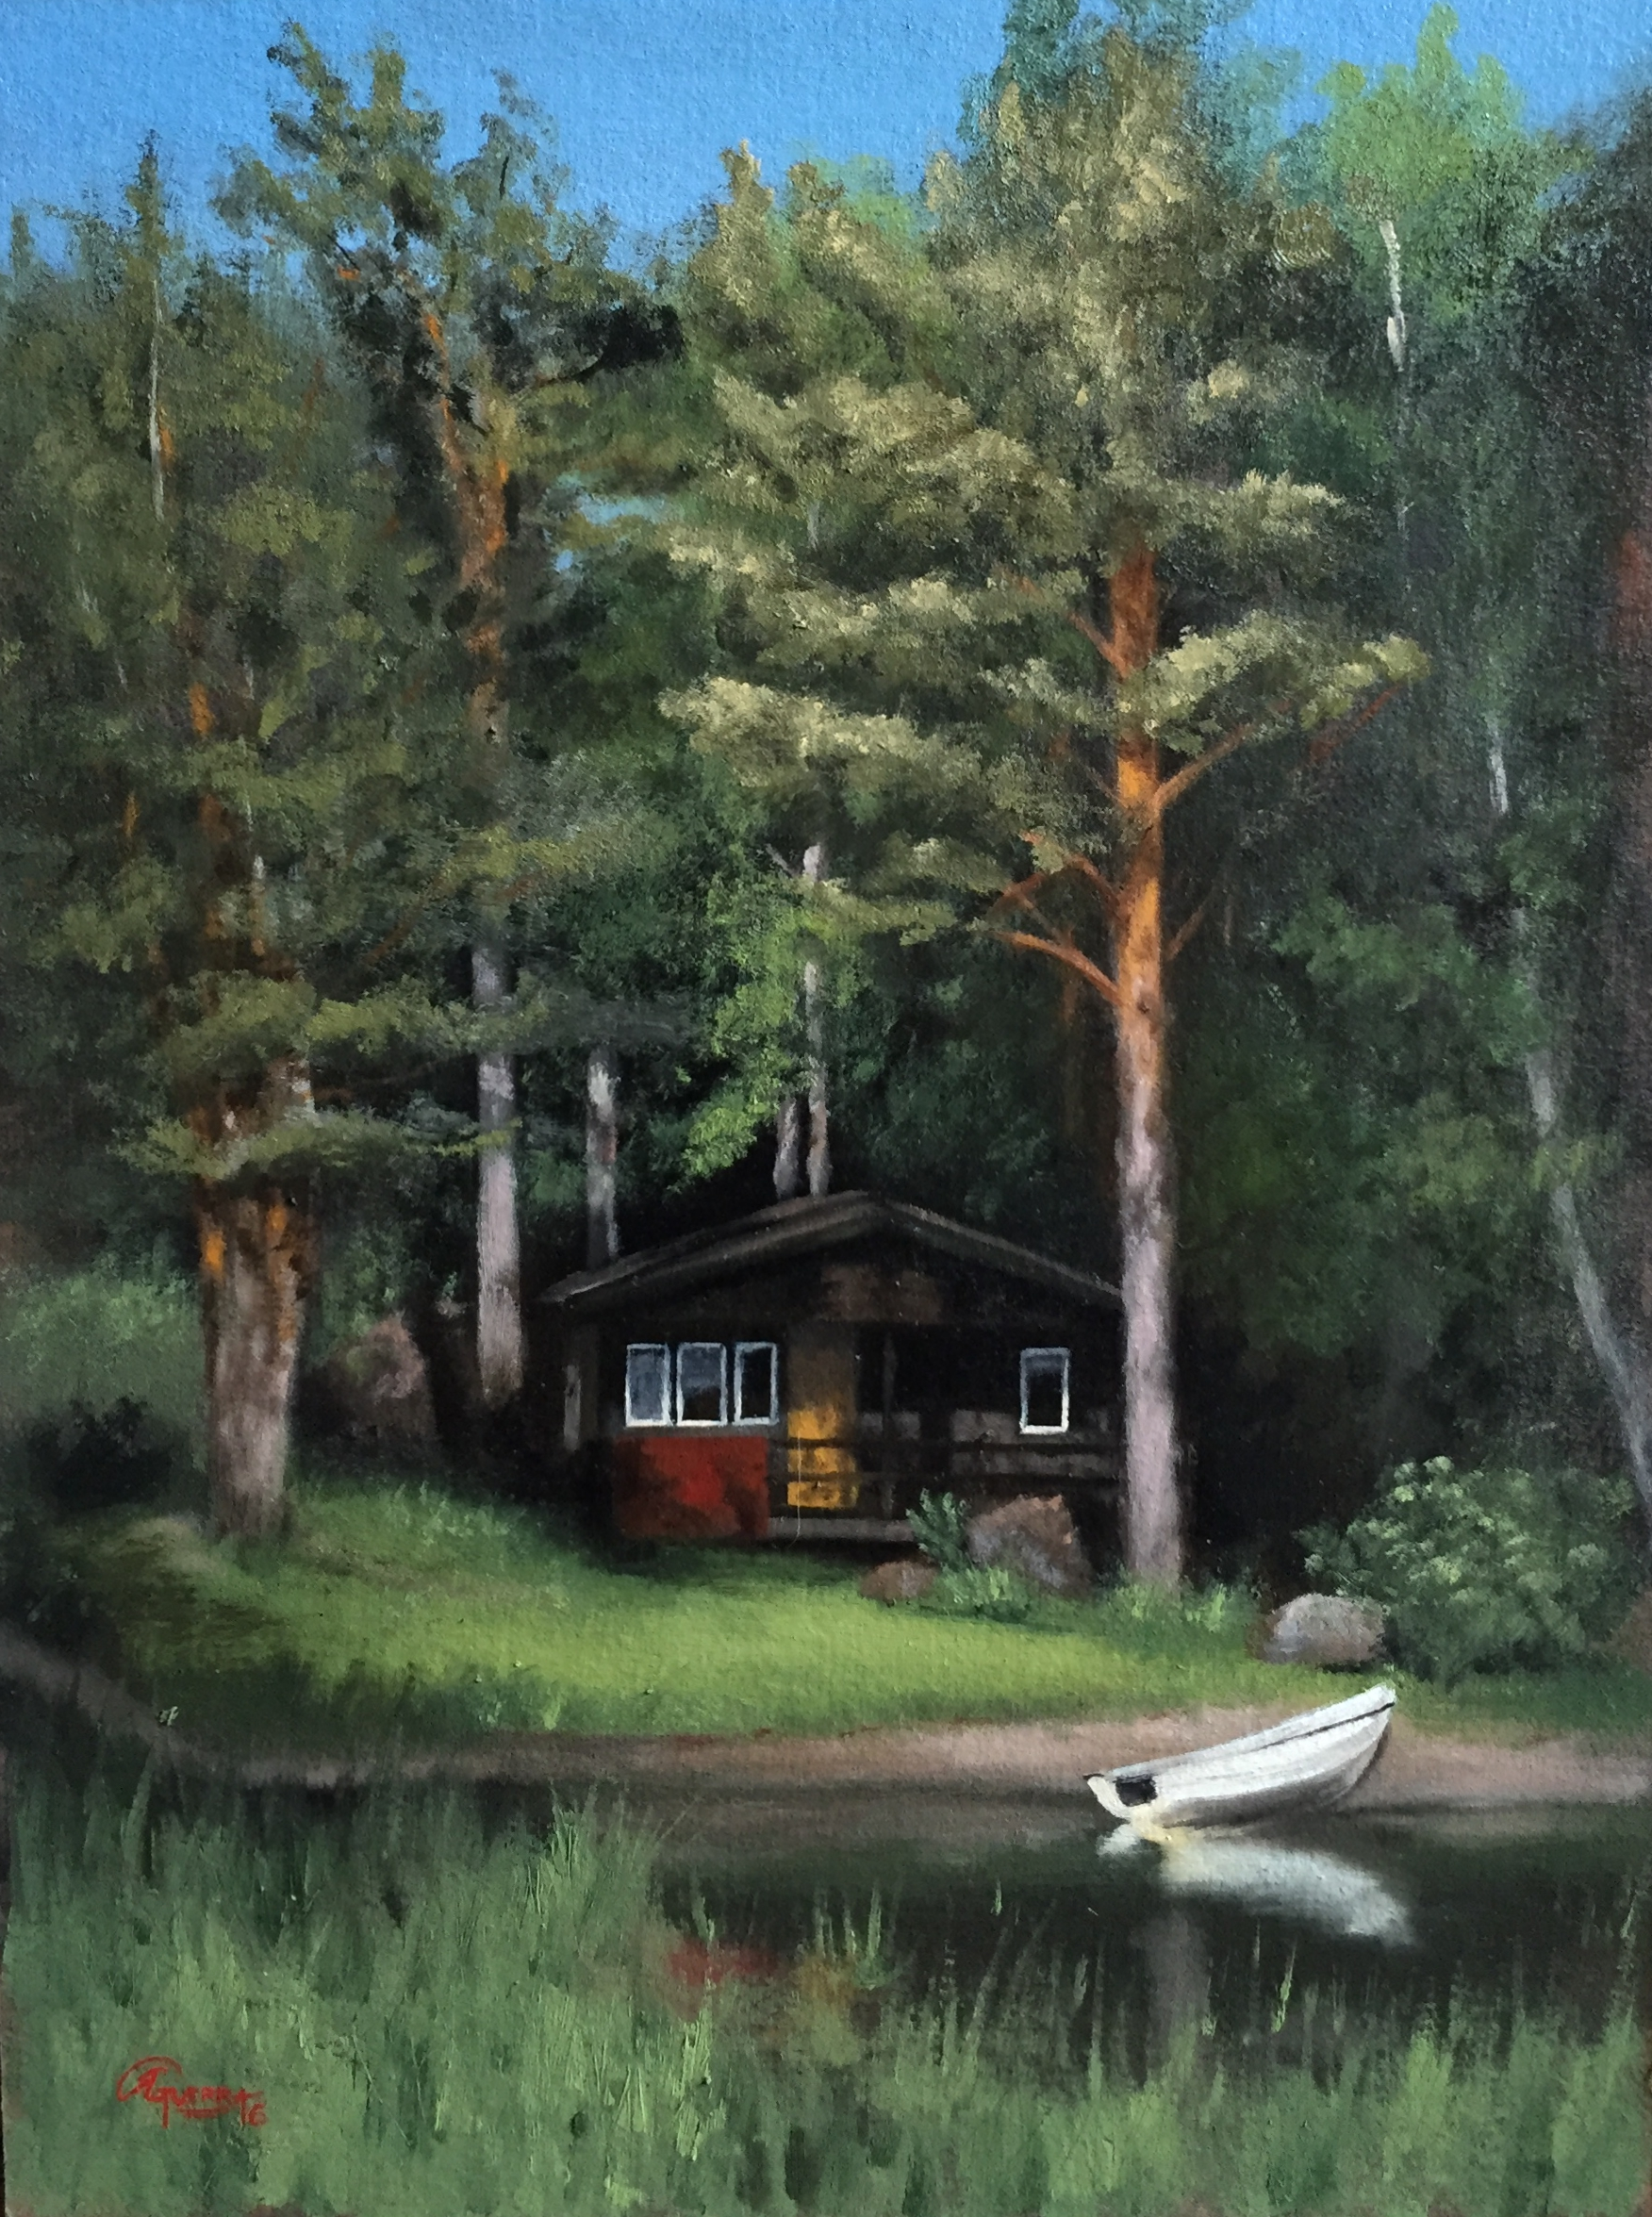 A Finnish Sauna in Middle Spring, Rafael Guerra Painting